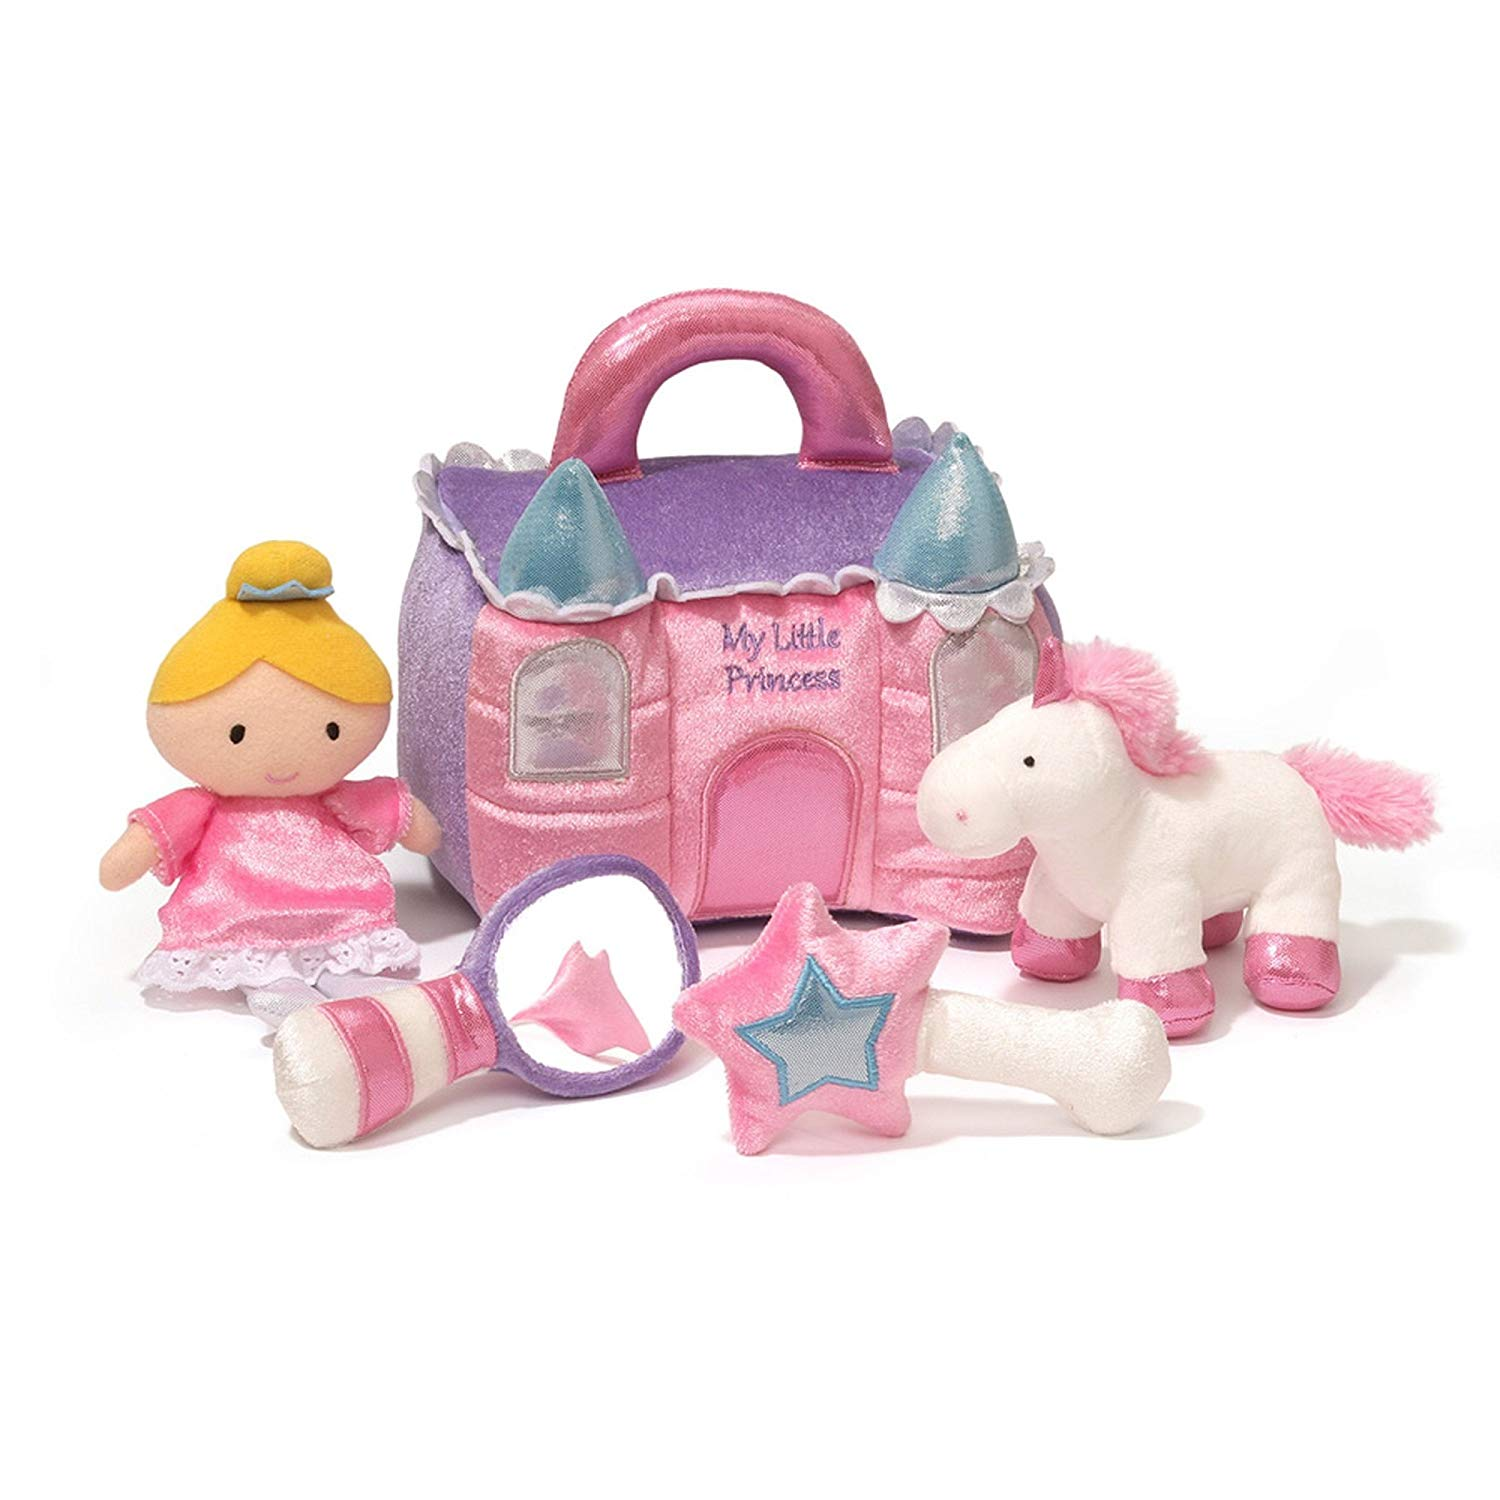 Baby GUND Princess Castle Stuffed Plus Playset